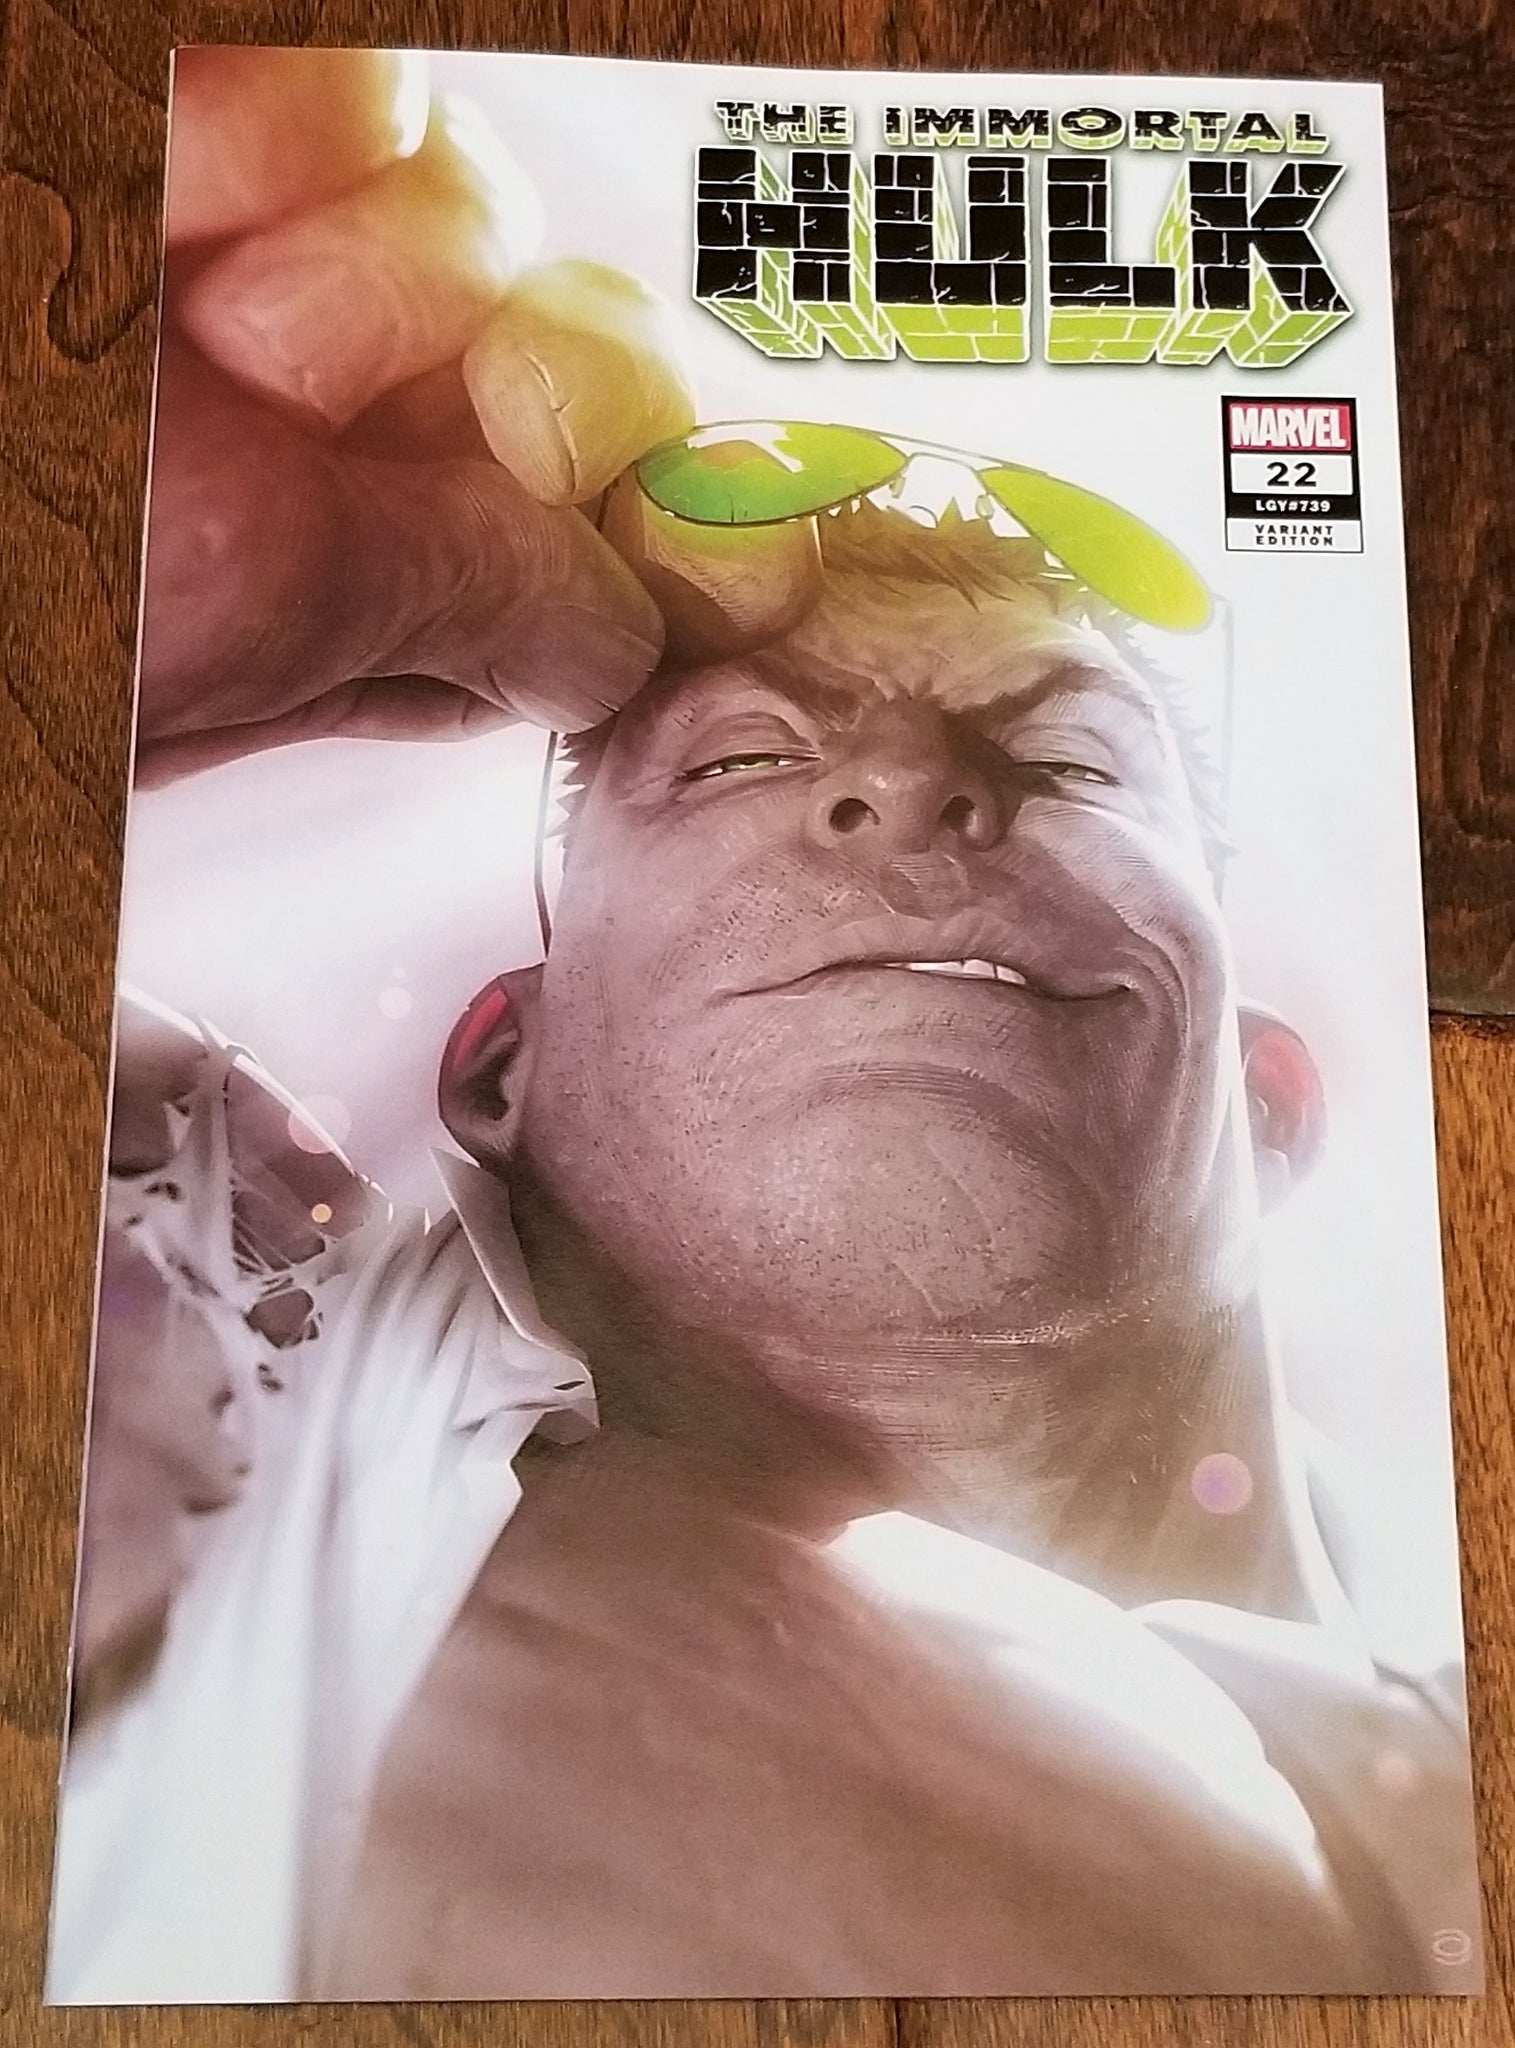 IMMORTAL HULK #22 ALEX GARNER GREY HULK JOE FIXIT LOGO EXCLUSIVE VARIANT 8.0 - 9.0